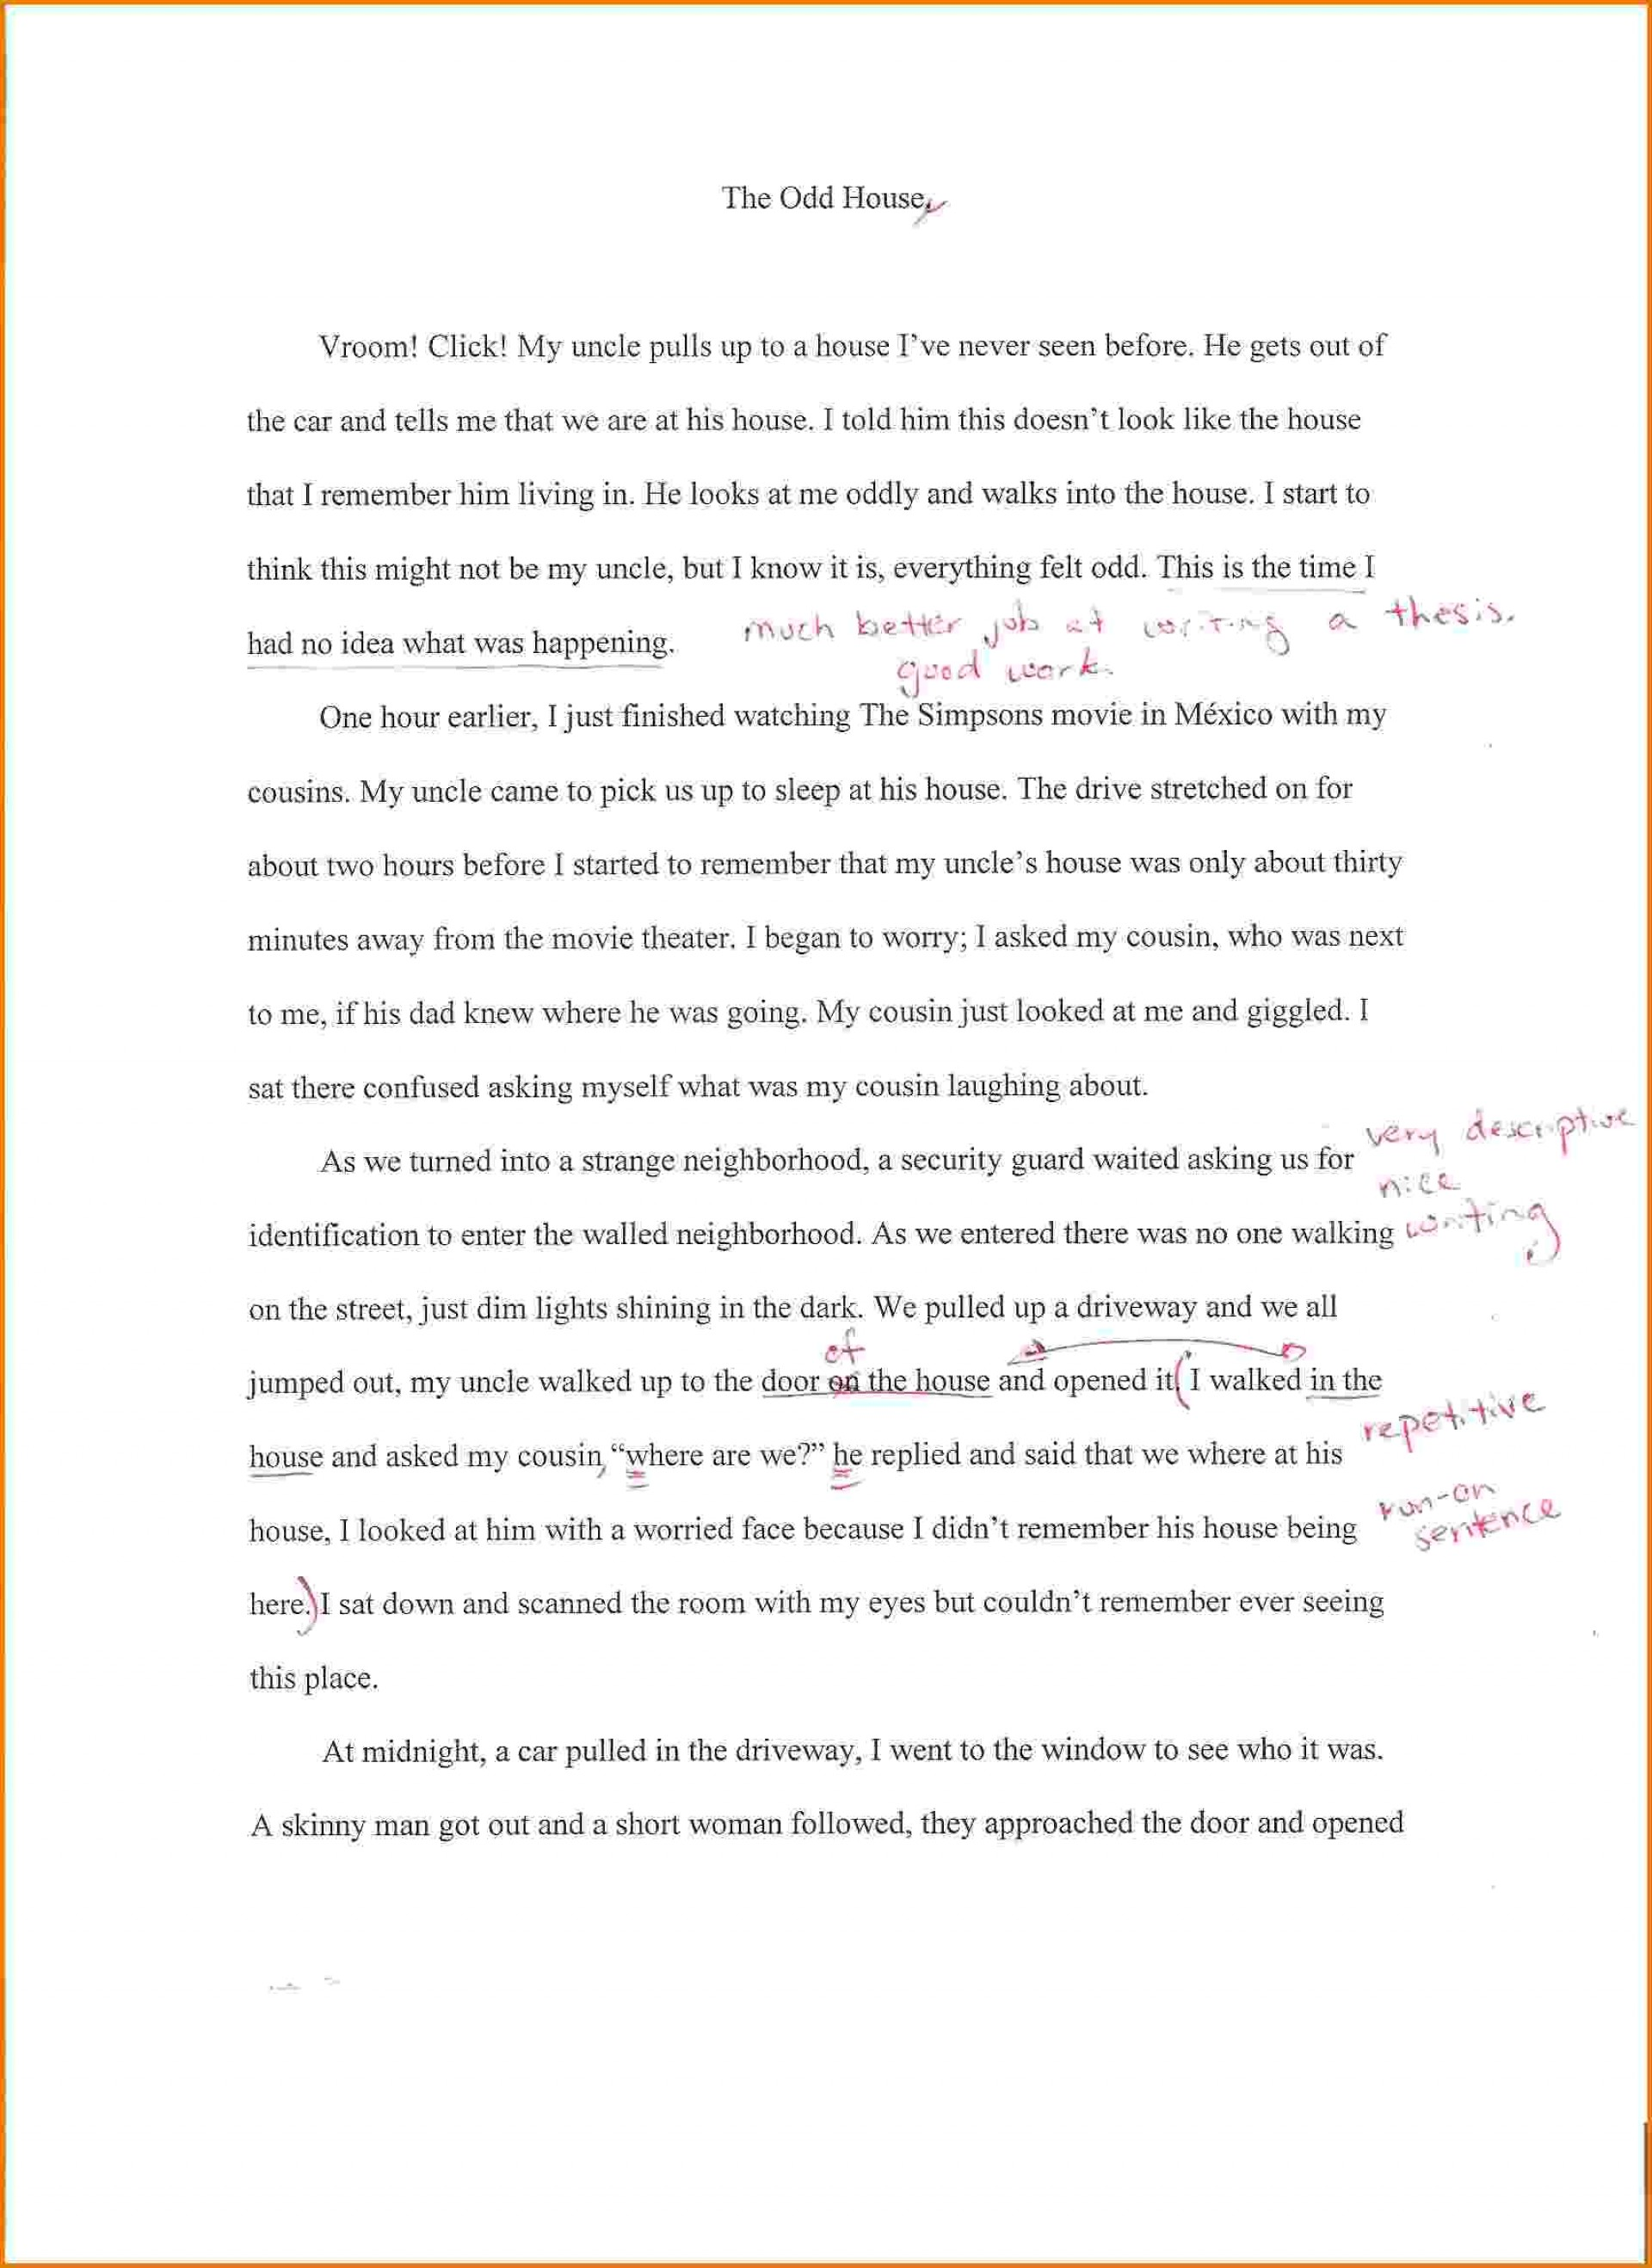 006 Essay Of Who Am I 2820472608 Family Values Research Paper Awesome As A Person Filipino Writing Aim In Life 1920